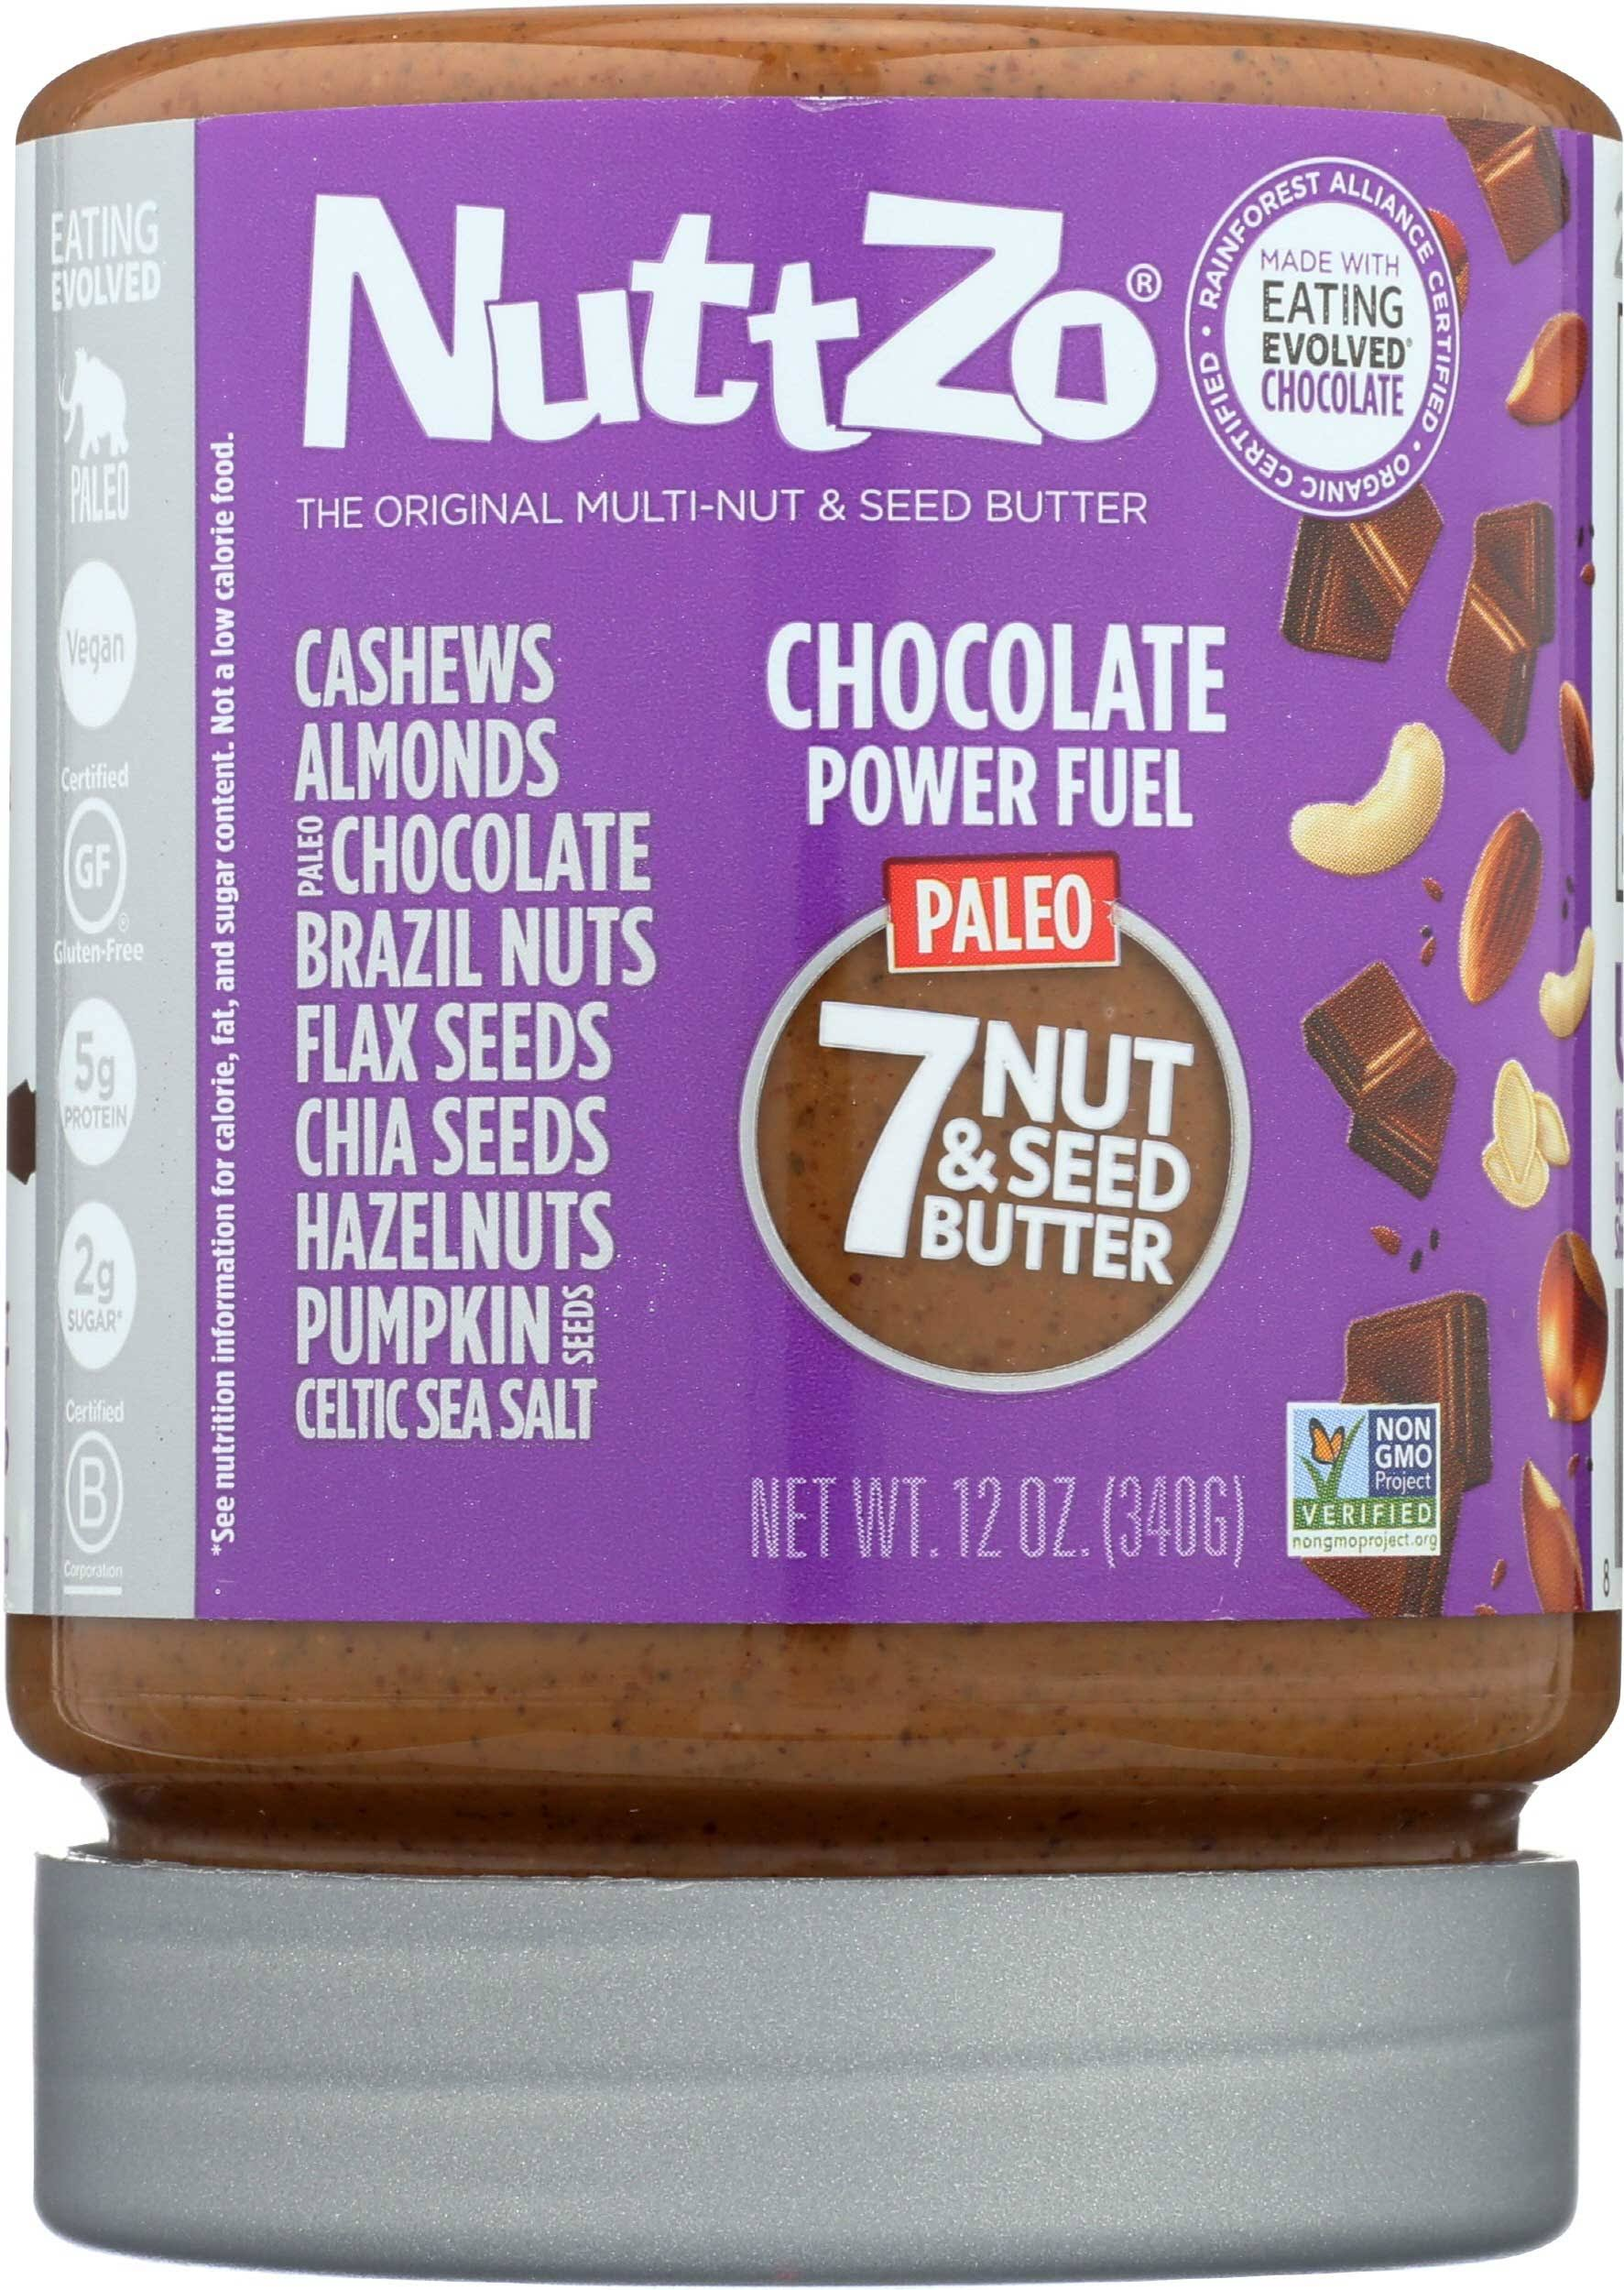 NuttZo Natural Smooth Chocolate Power Fuel Seven Nut & Seed Butter, 12 Ounce